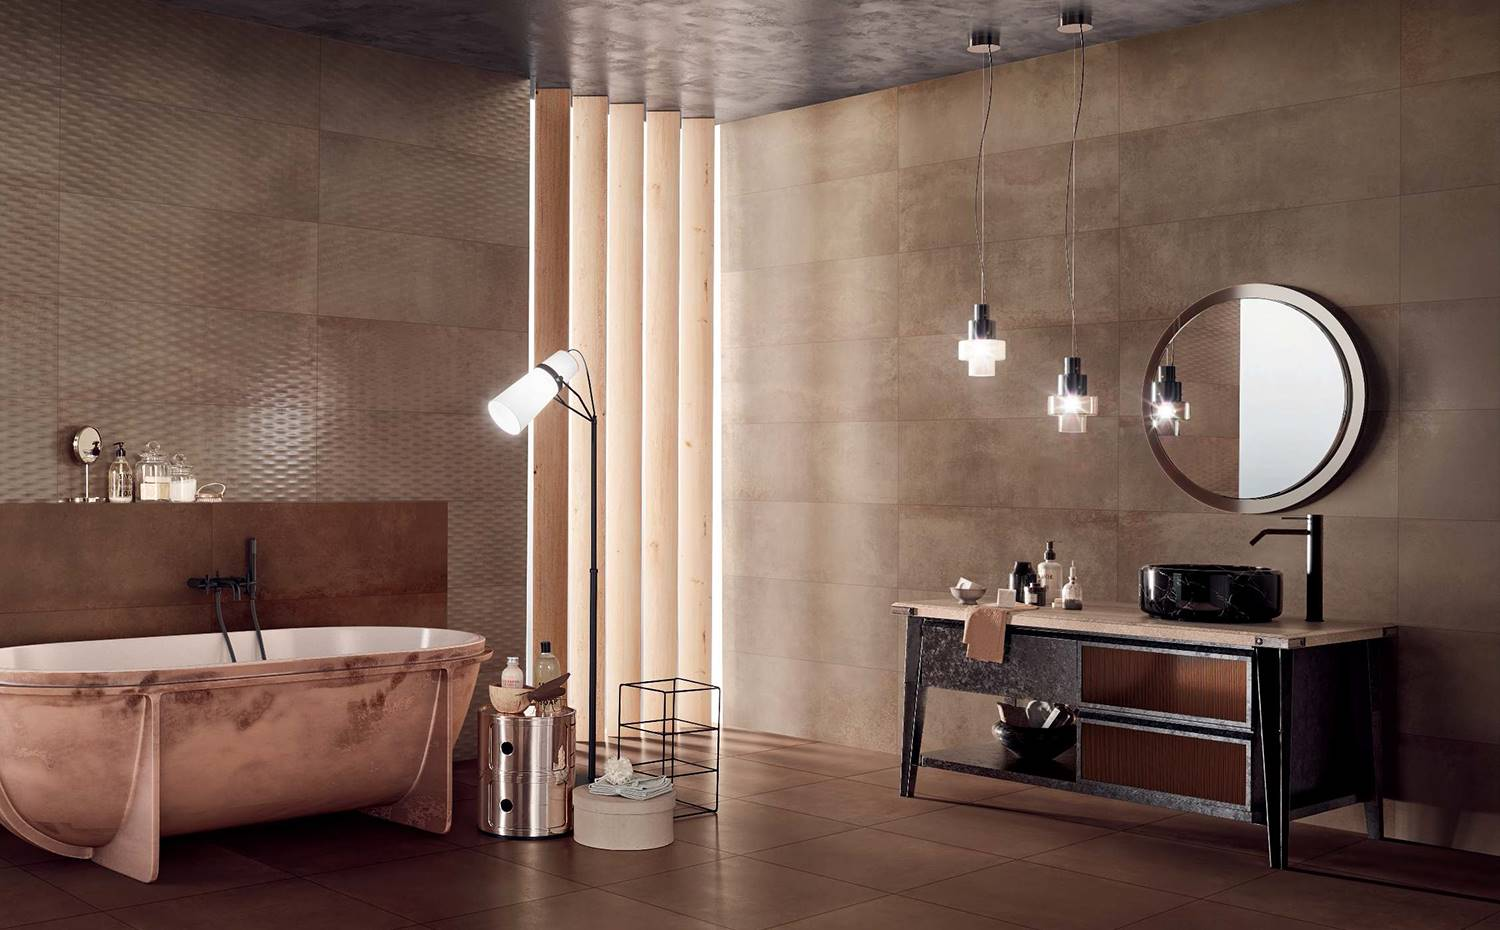 Tendencia Dramatic Interior. Colección Metallic, de Love Tiles.